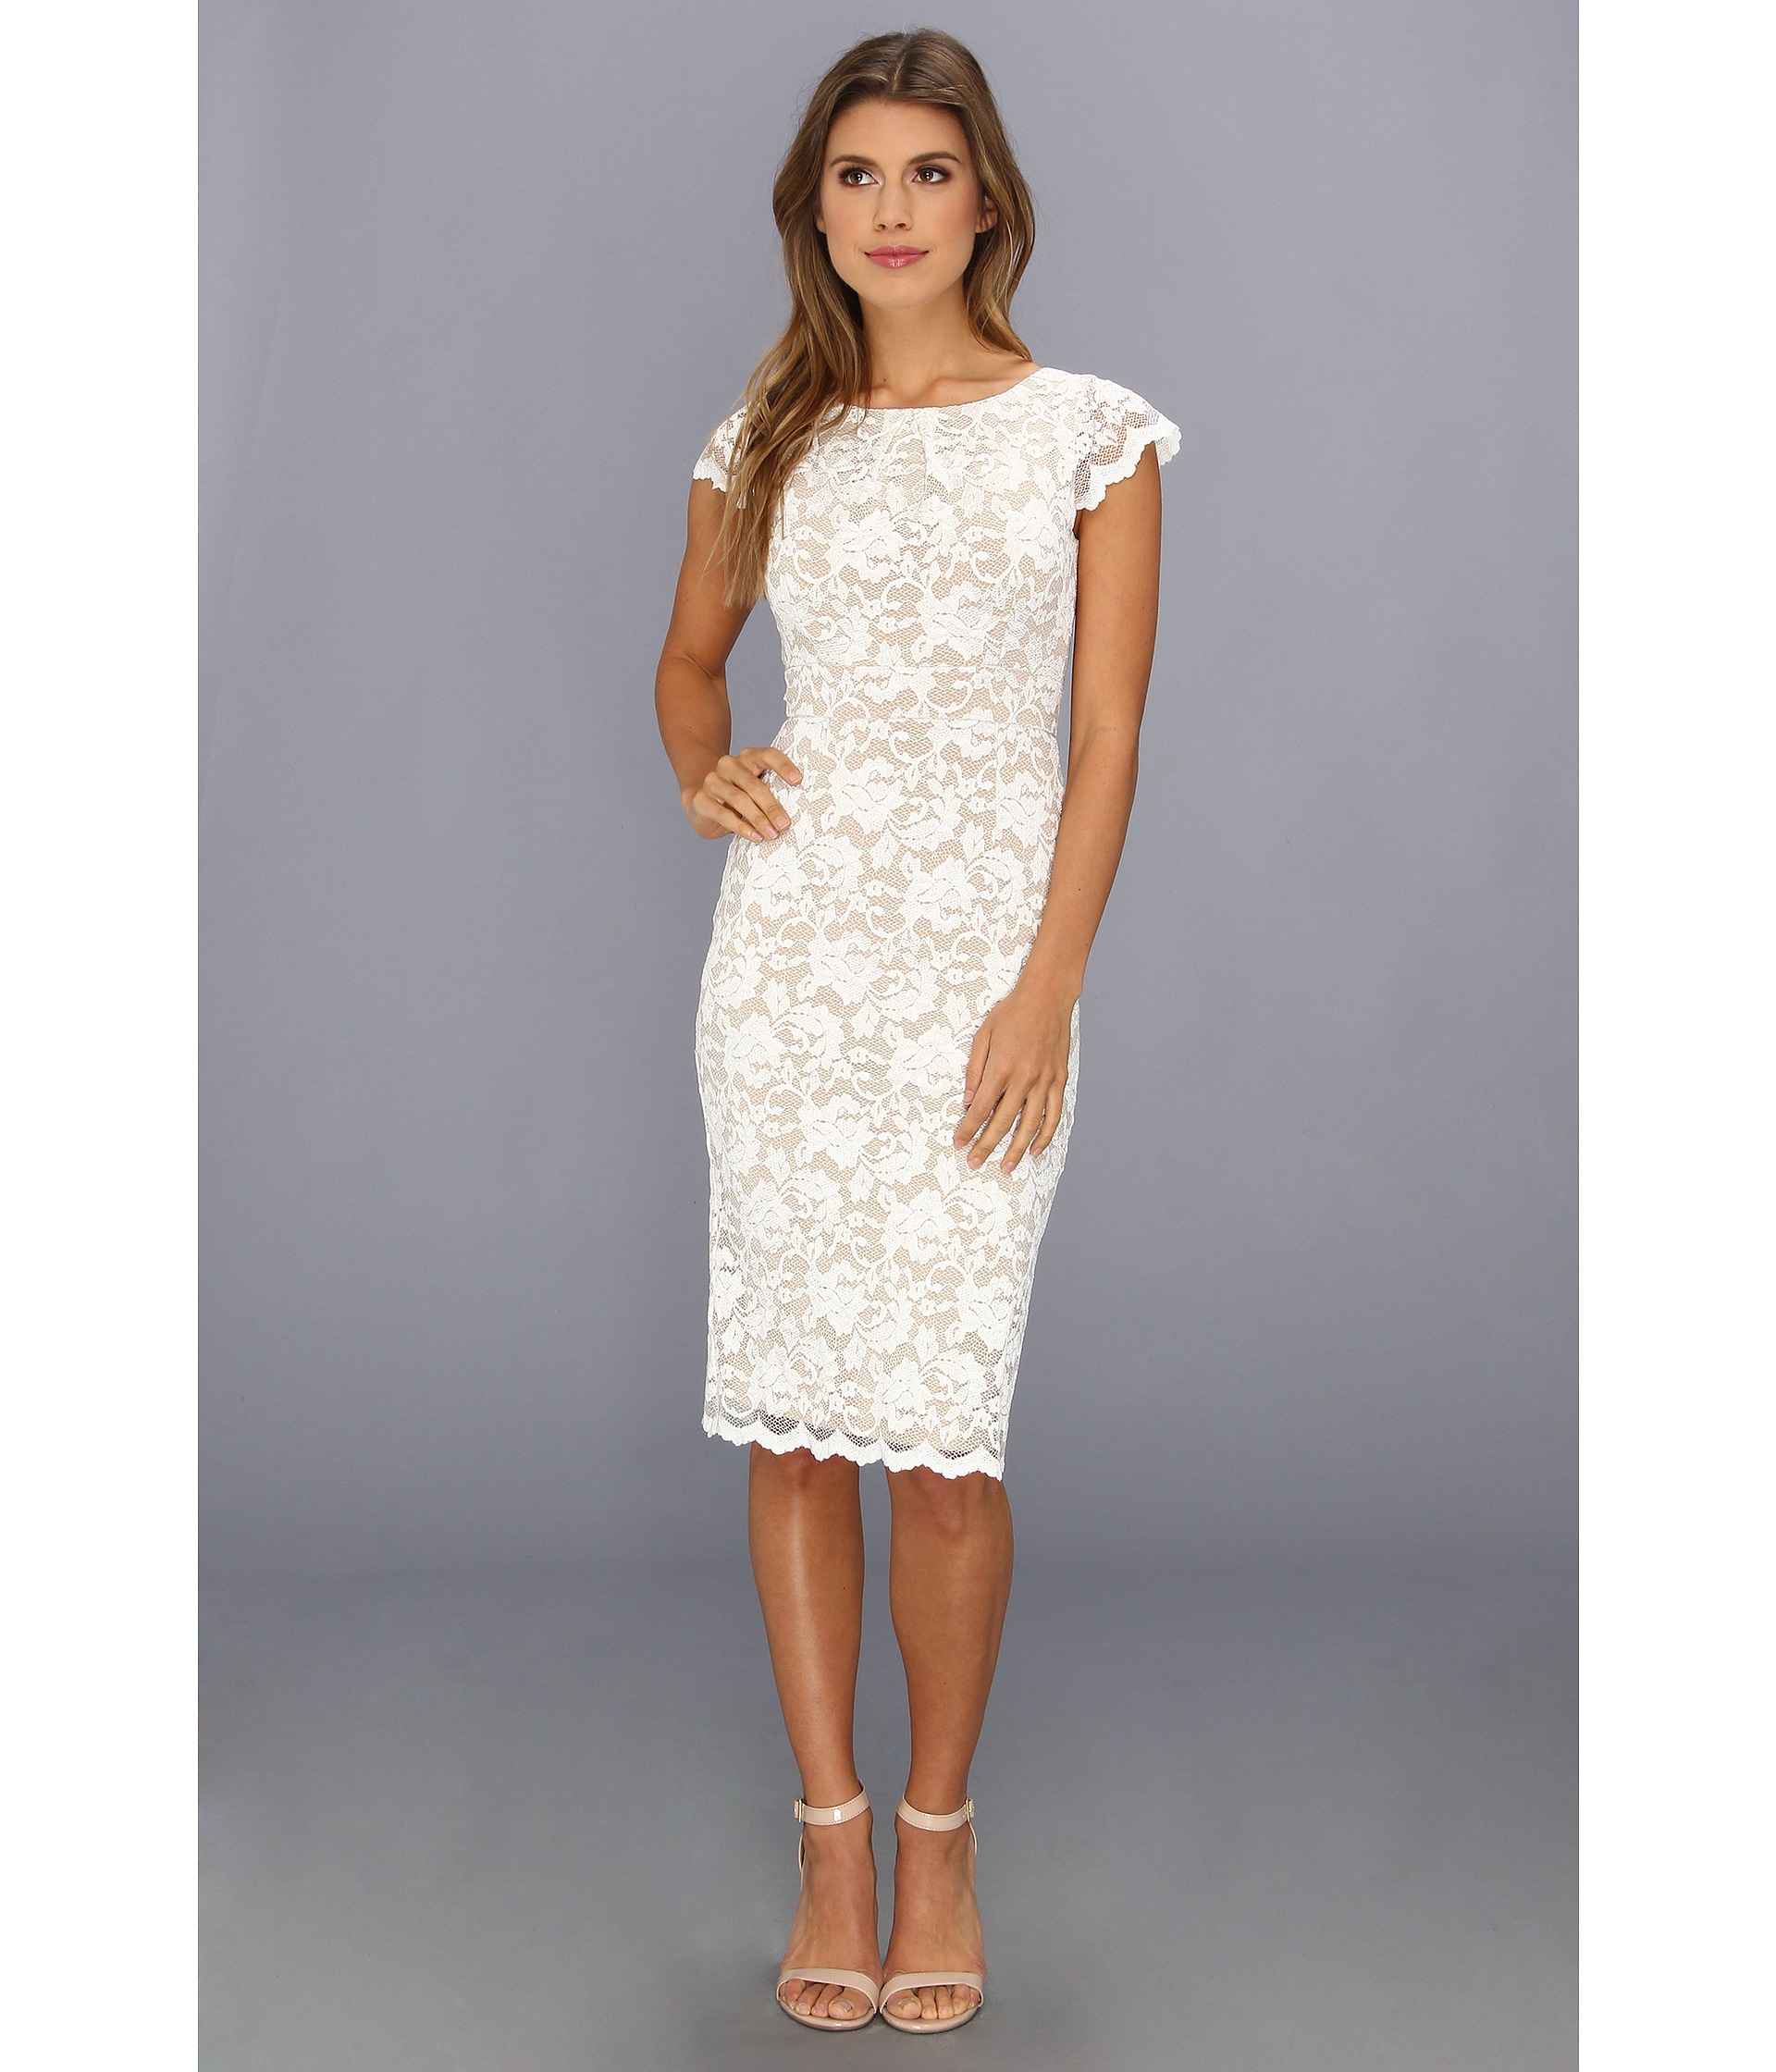 Beautiful Many Women Arent A Fan Of The Hip Hugging Design That  For A Truly Figure Flattering Party Dress Its Made With Soft, High Quality Lace Fabric That Has A Bit Of Stretch